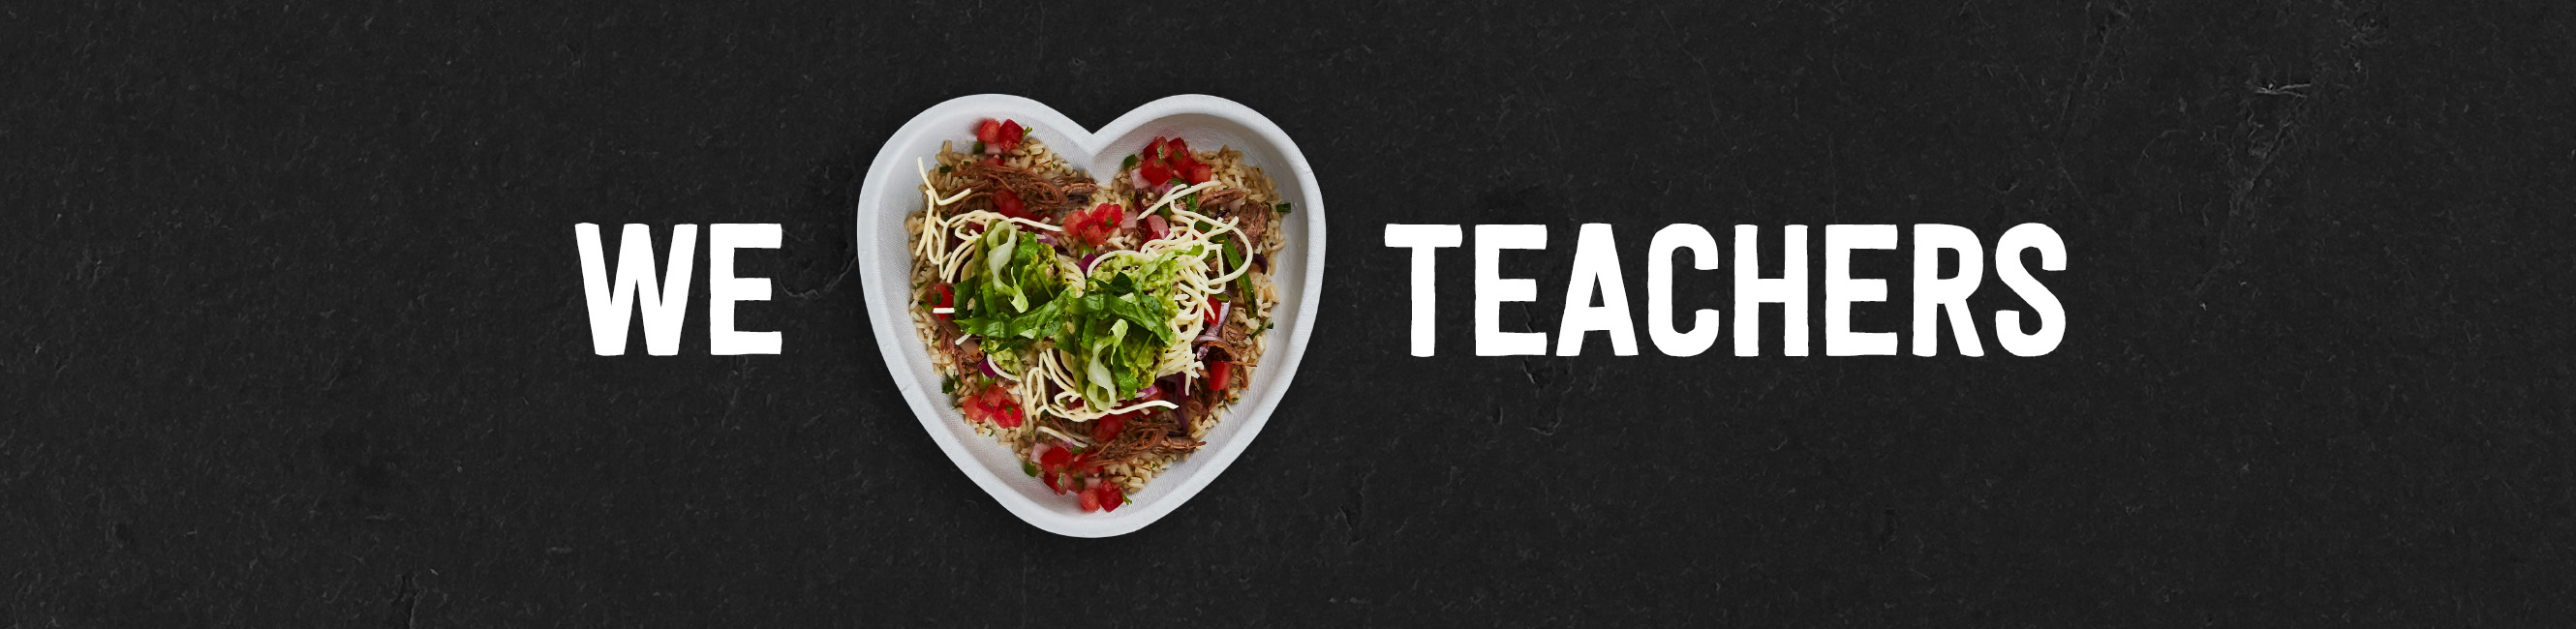 Chipotle: Buy One, Get One Free for Educators on May 2, 2017